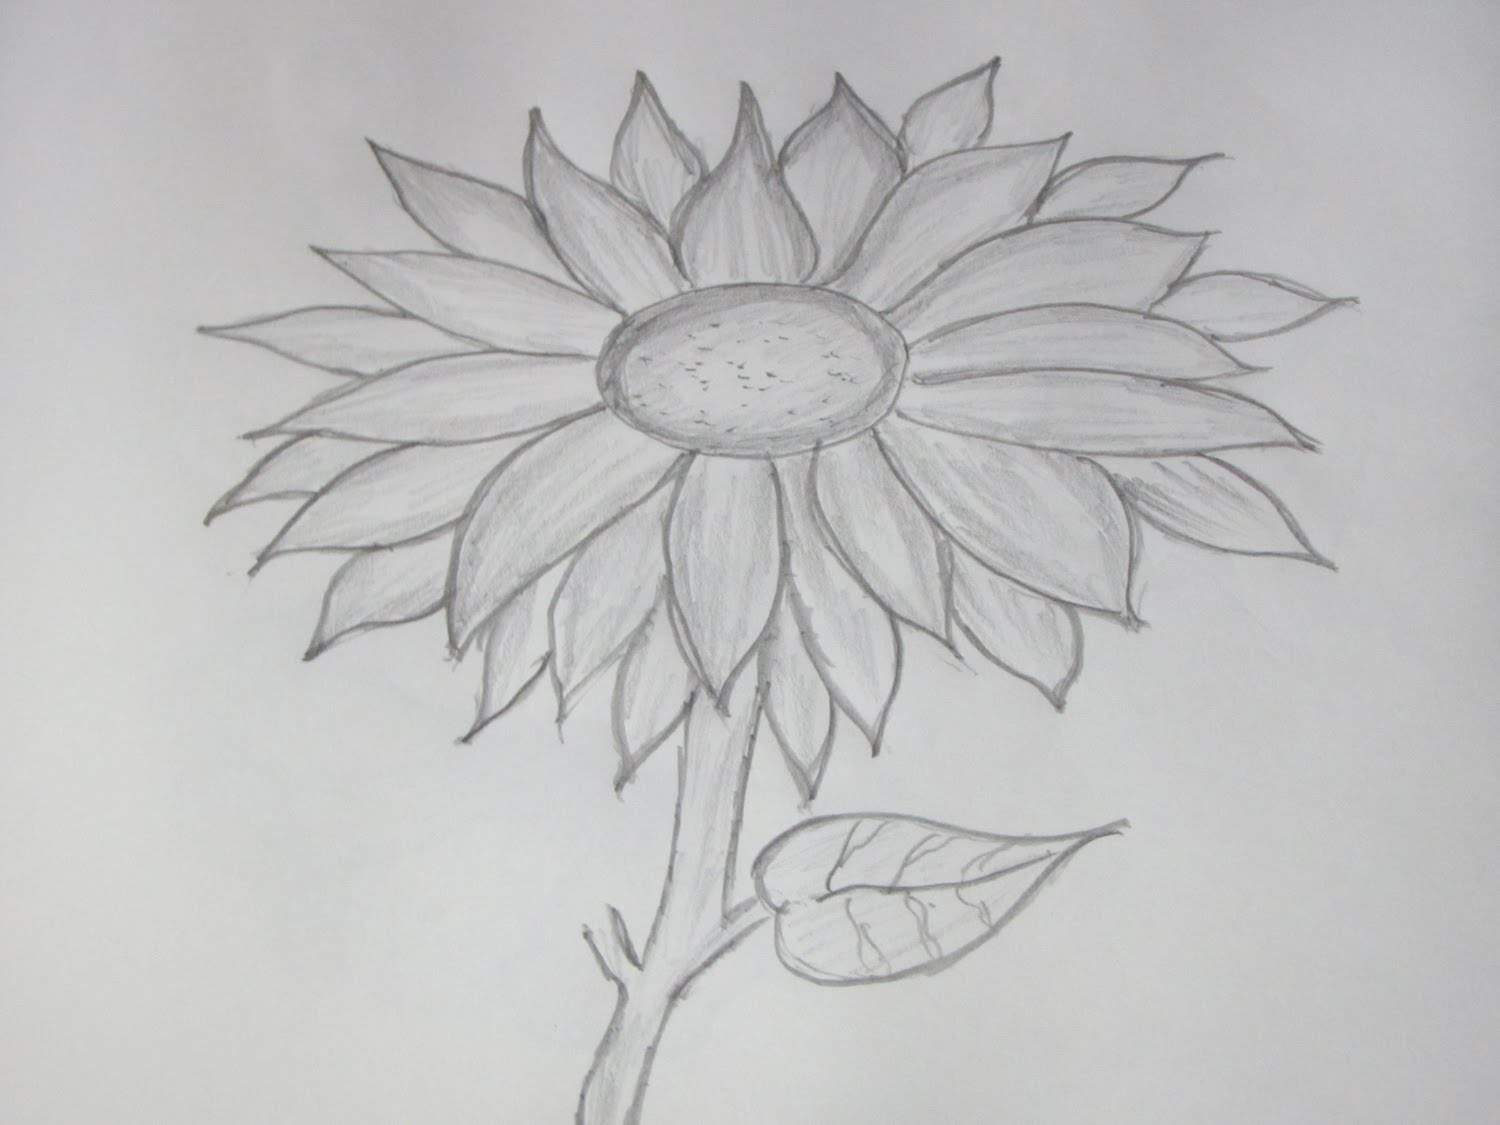 Drawn amd sunflower YouTube and Sketch Sunflower Pencil